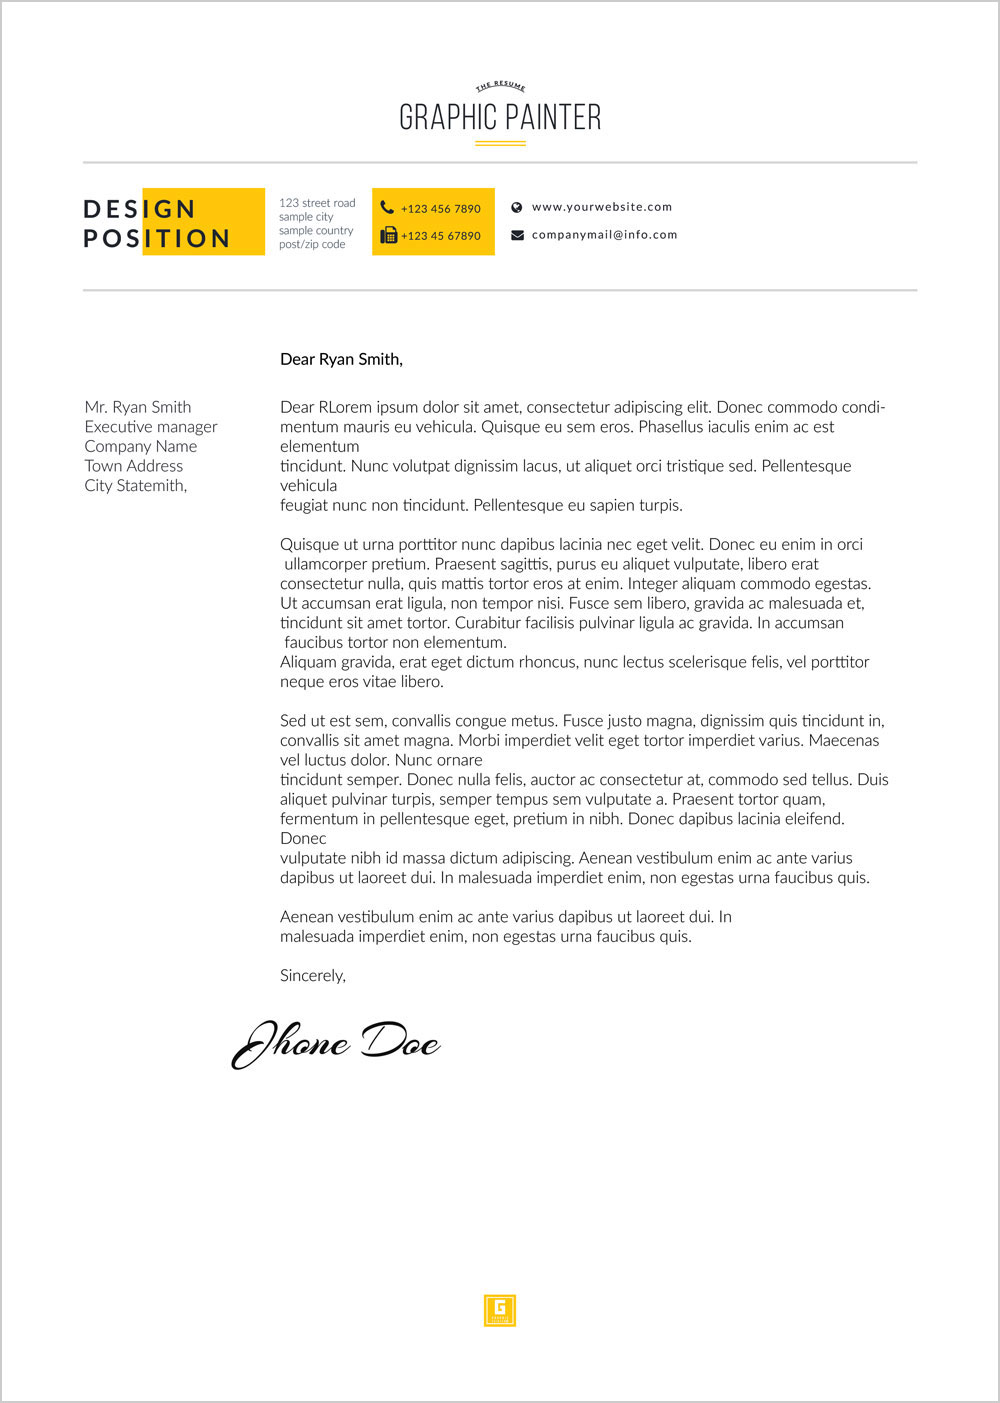 Free-Dark-&-Light-PSD-&-Word-Resume-Template,-Cover-Letter-&-Portfolio-Design (6)